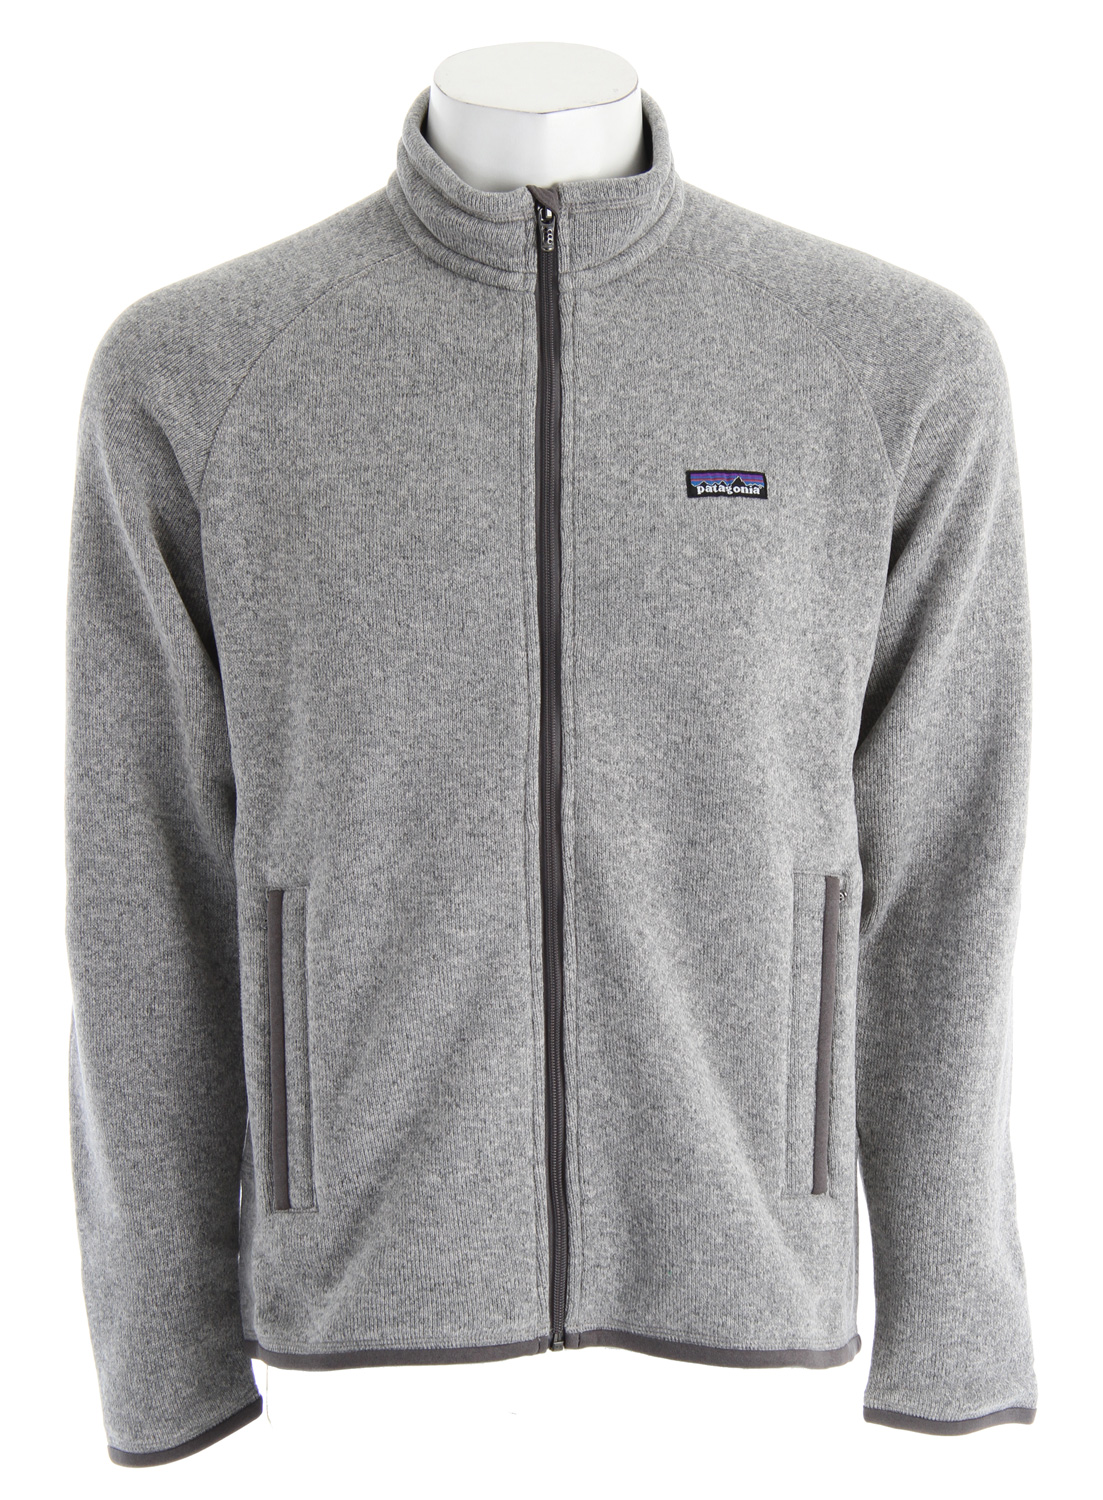 A soft, full-zip polyester fleece jacket that has a sweater-knit face and a warm fleece interior. fabric: 9.5-oz 100% polyester with a sweater-knit exterior and fleece interiorKey Features of the Patagonia Better Sweater Jacket Fleece: Fabric has a sweater-knit face, fleece interior and heathered yarns Full-zip jacket with zip-through, stand-up collar and zipper garage Raglan sleeves for pack-wearing comfort Two zippered handwarmer pockets Micropolyester jersey trim on cuffs, hem and back of neck Can be worn with layers as outerwear or as a midlayer under a shell Hip length - $103.95